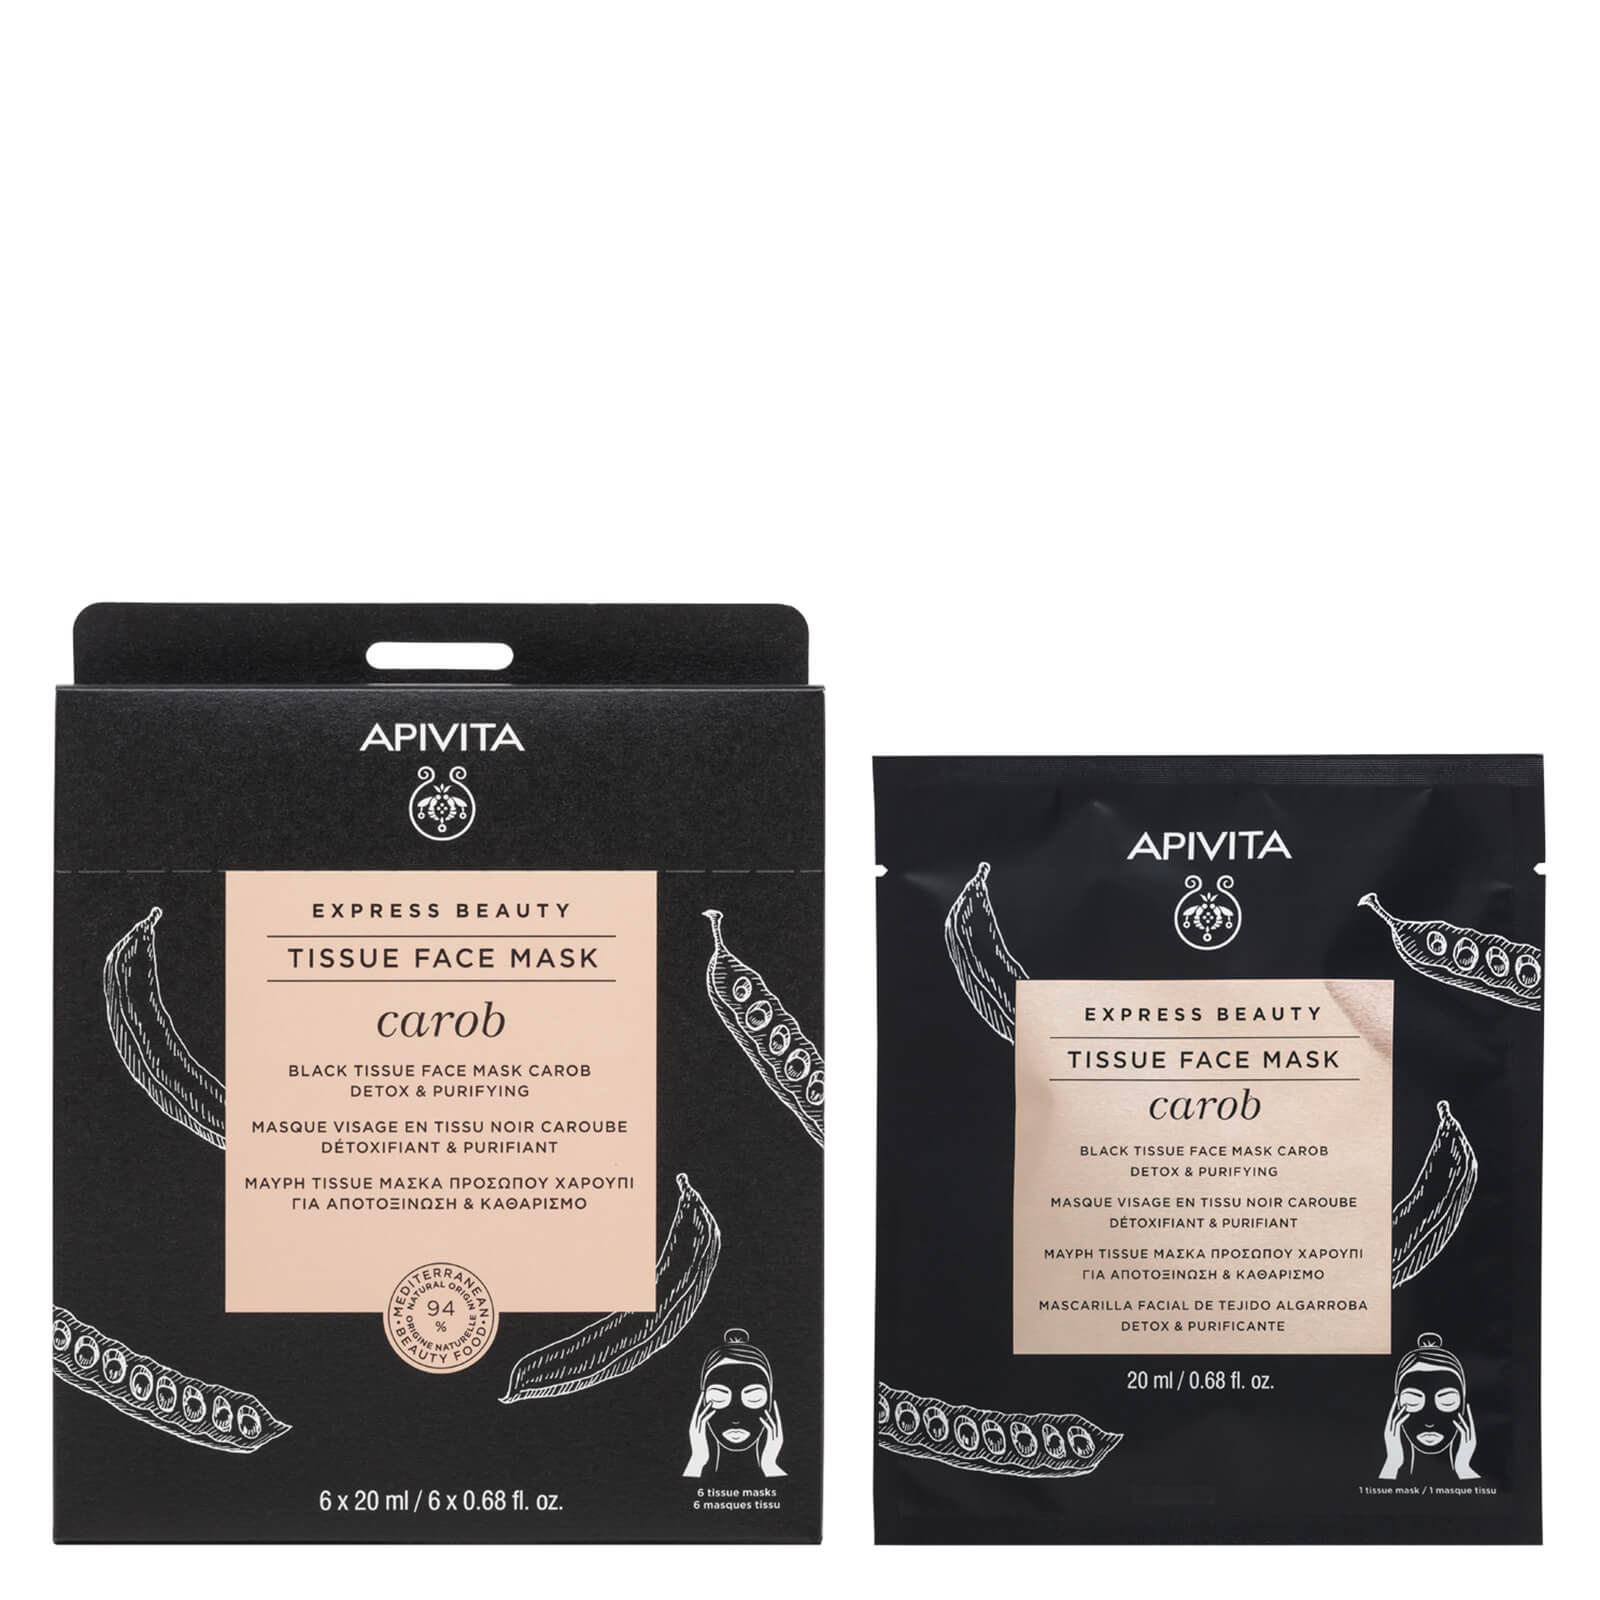 APIVITA Express Beauty Black Tissue Face Mask Detox and Purifying with Carob 20ml